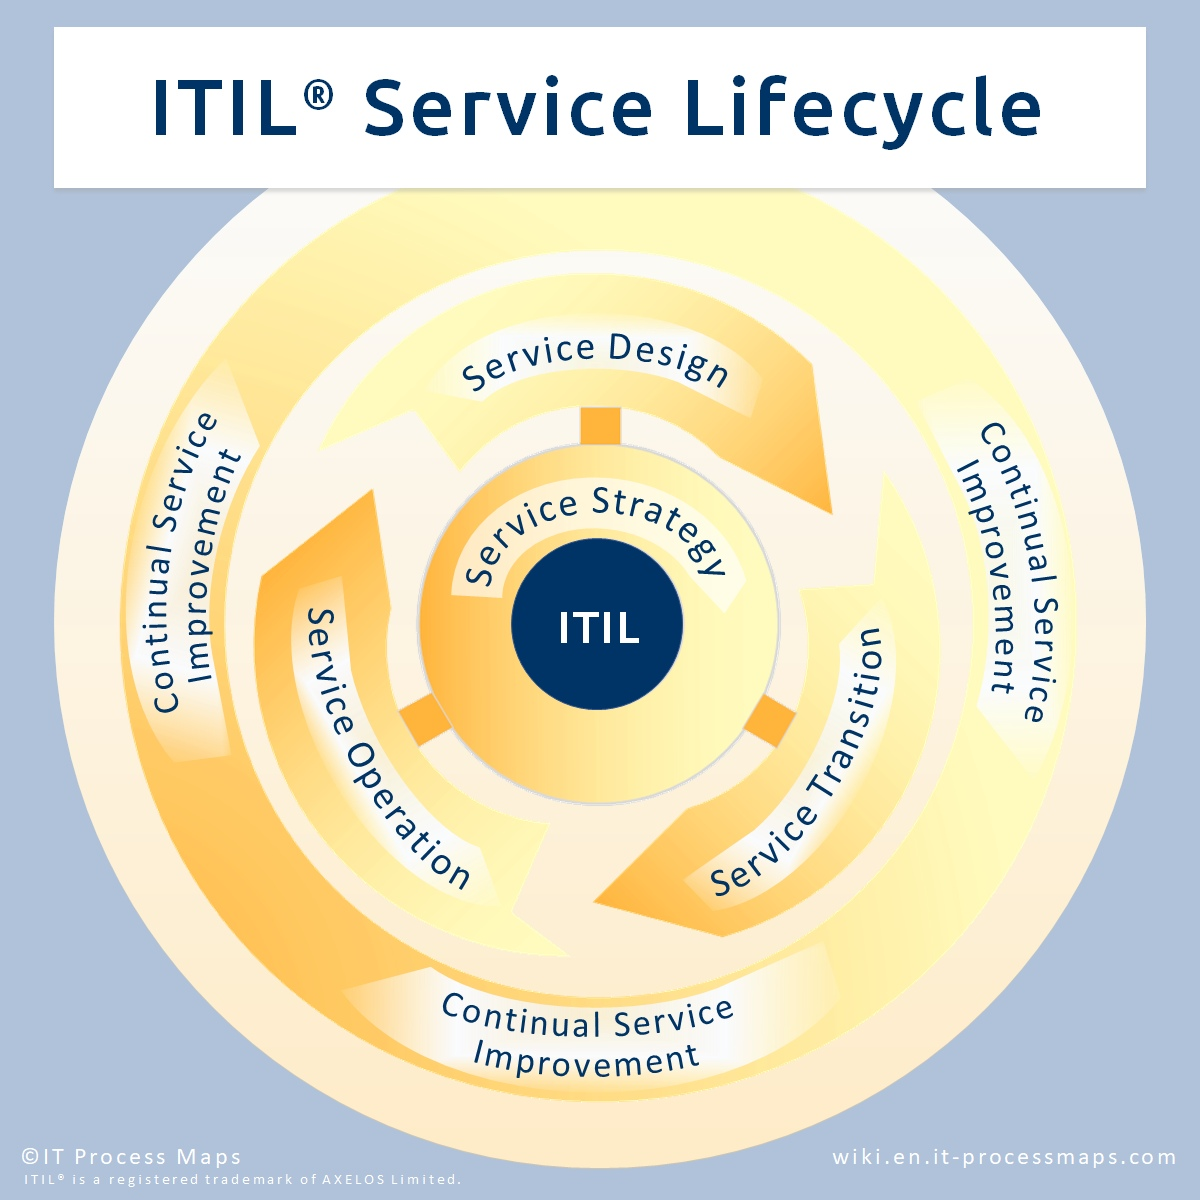 hight resolution of  itil service lifecycle see fig